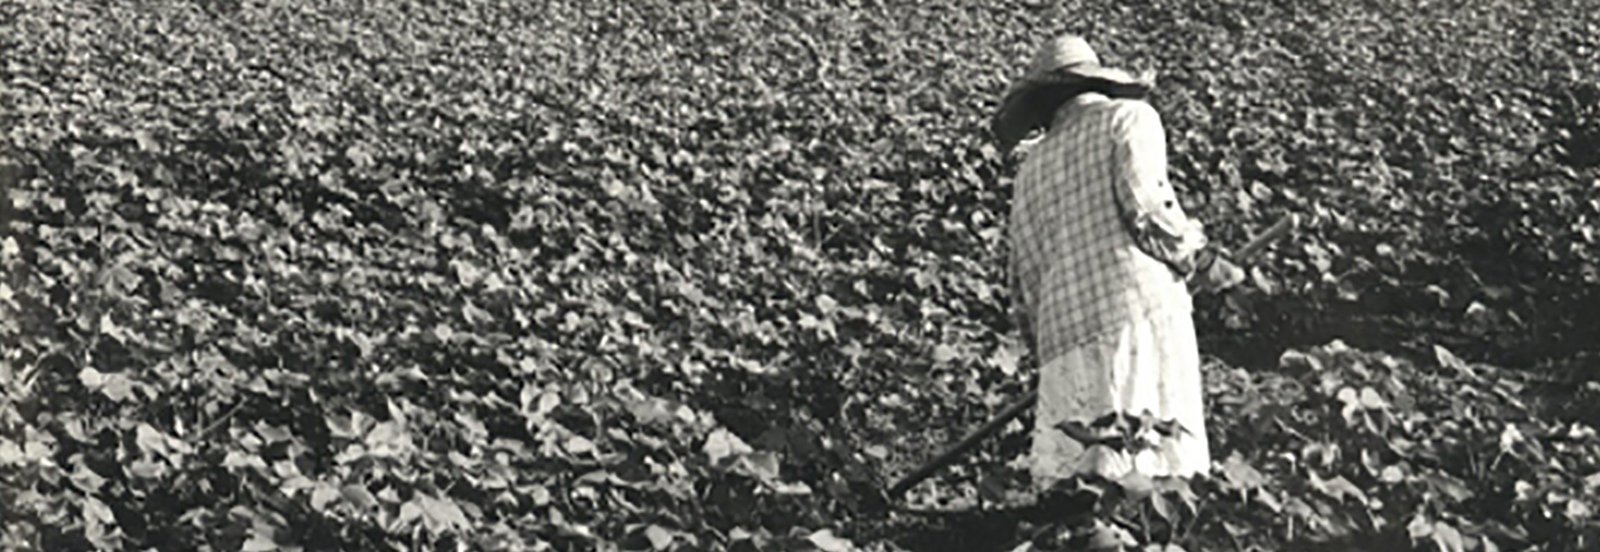 Sharecropper in fields